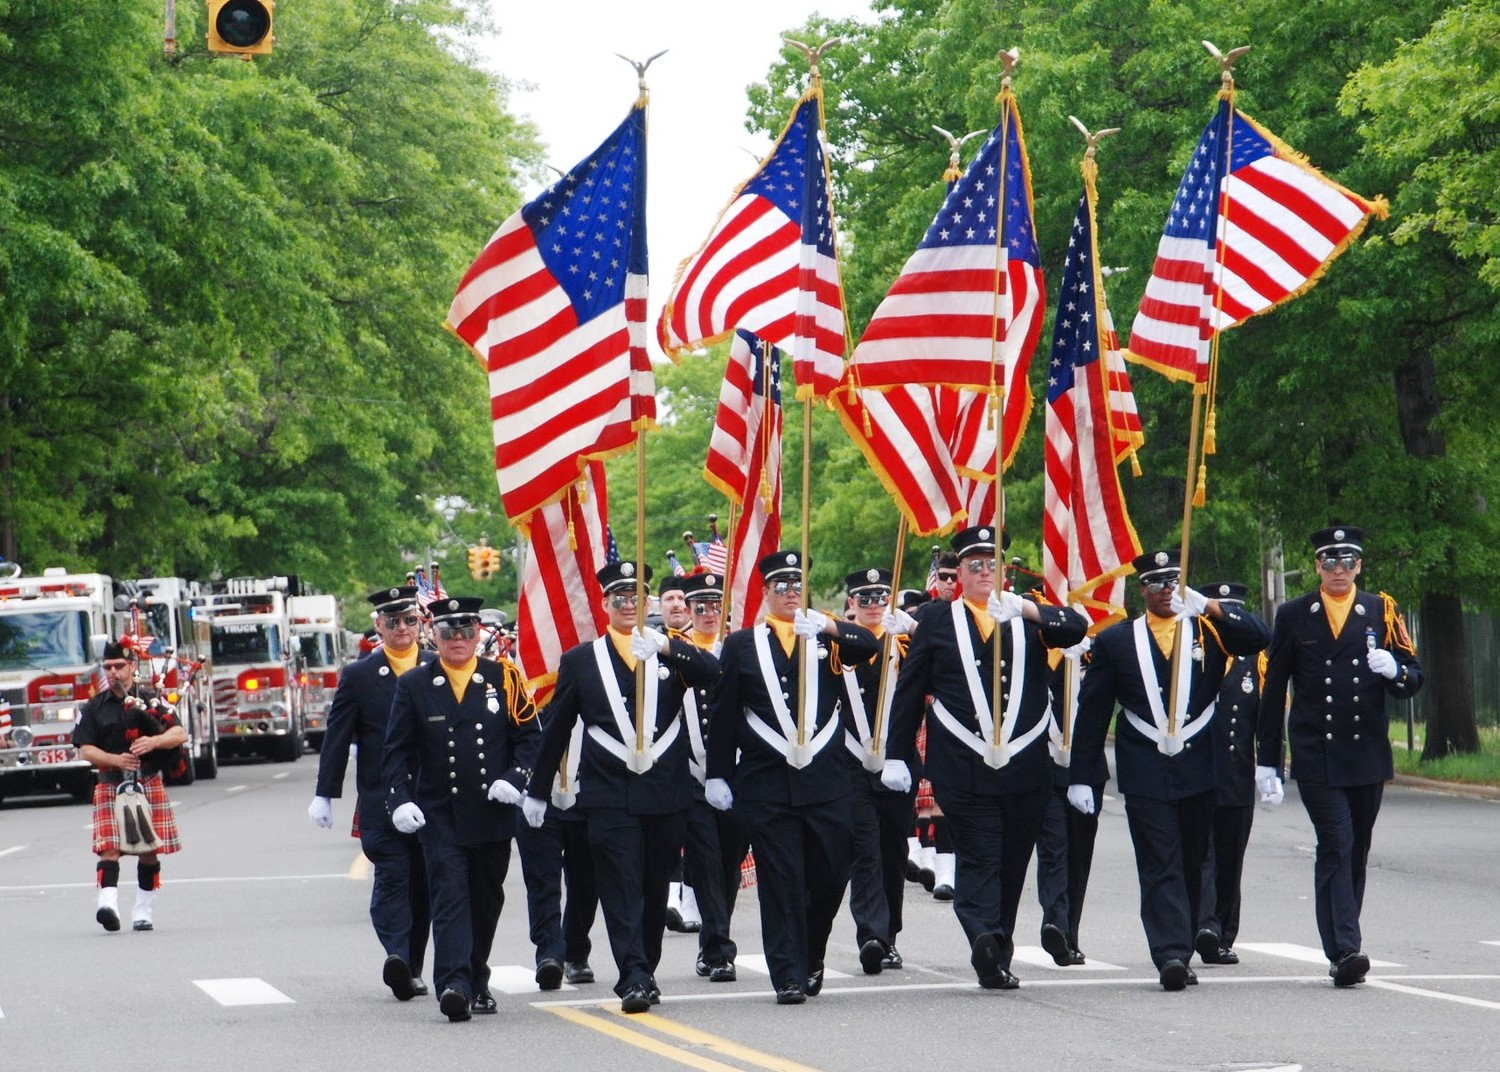 The East Meadow Fire Department recently announced that it is hosting the annual 6th Battalion Parade and Drill competition on Aug. 25.